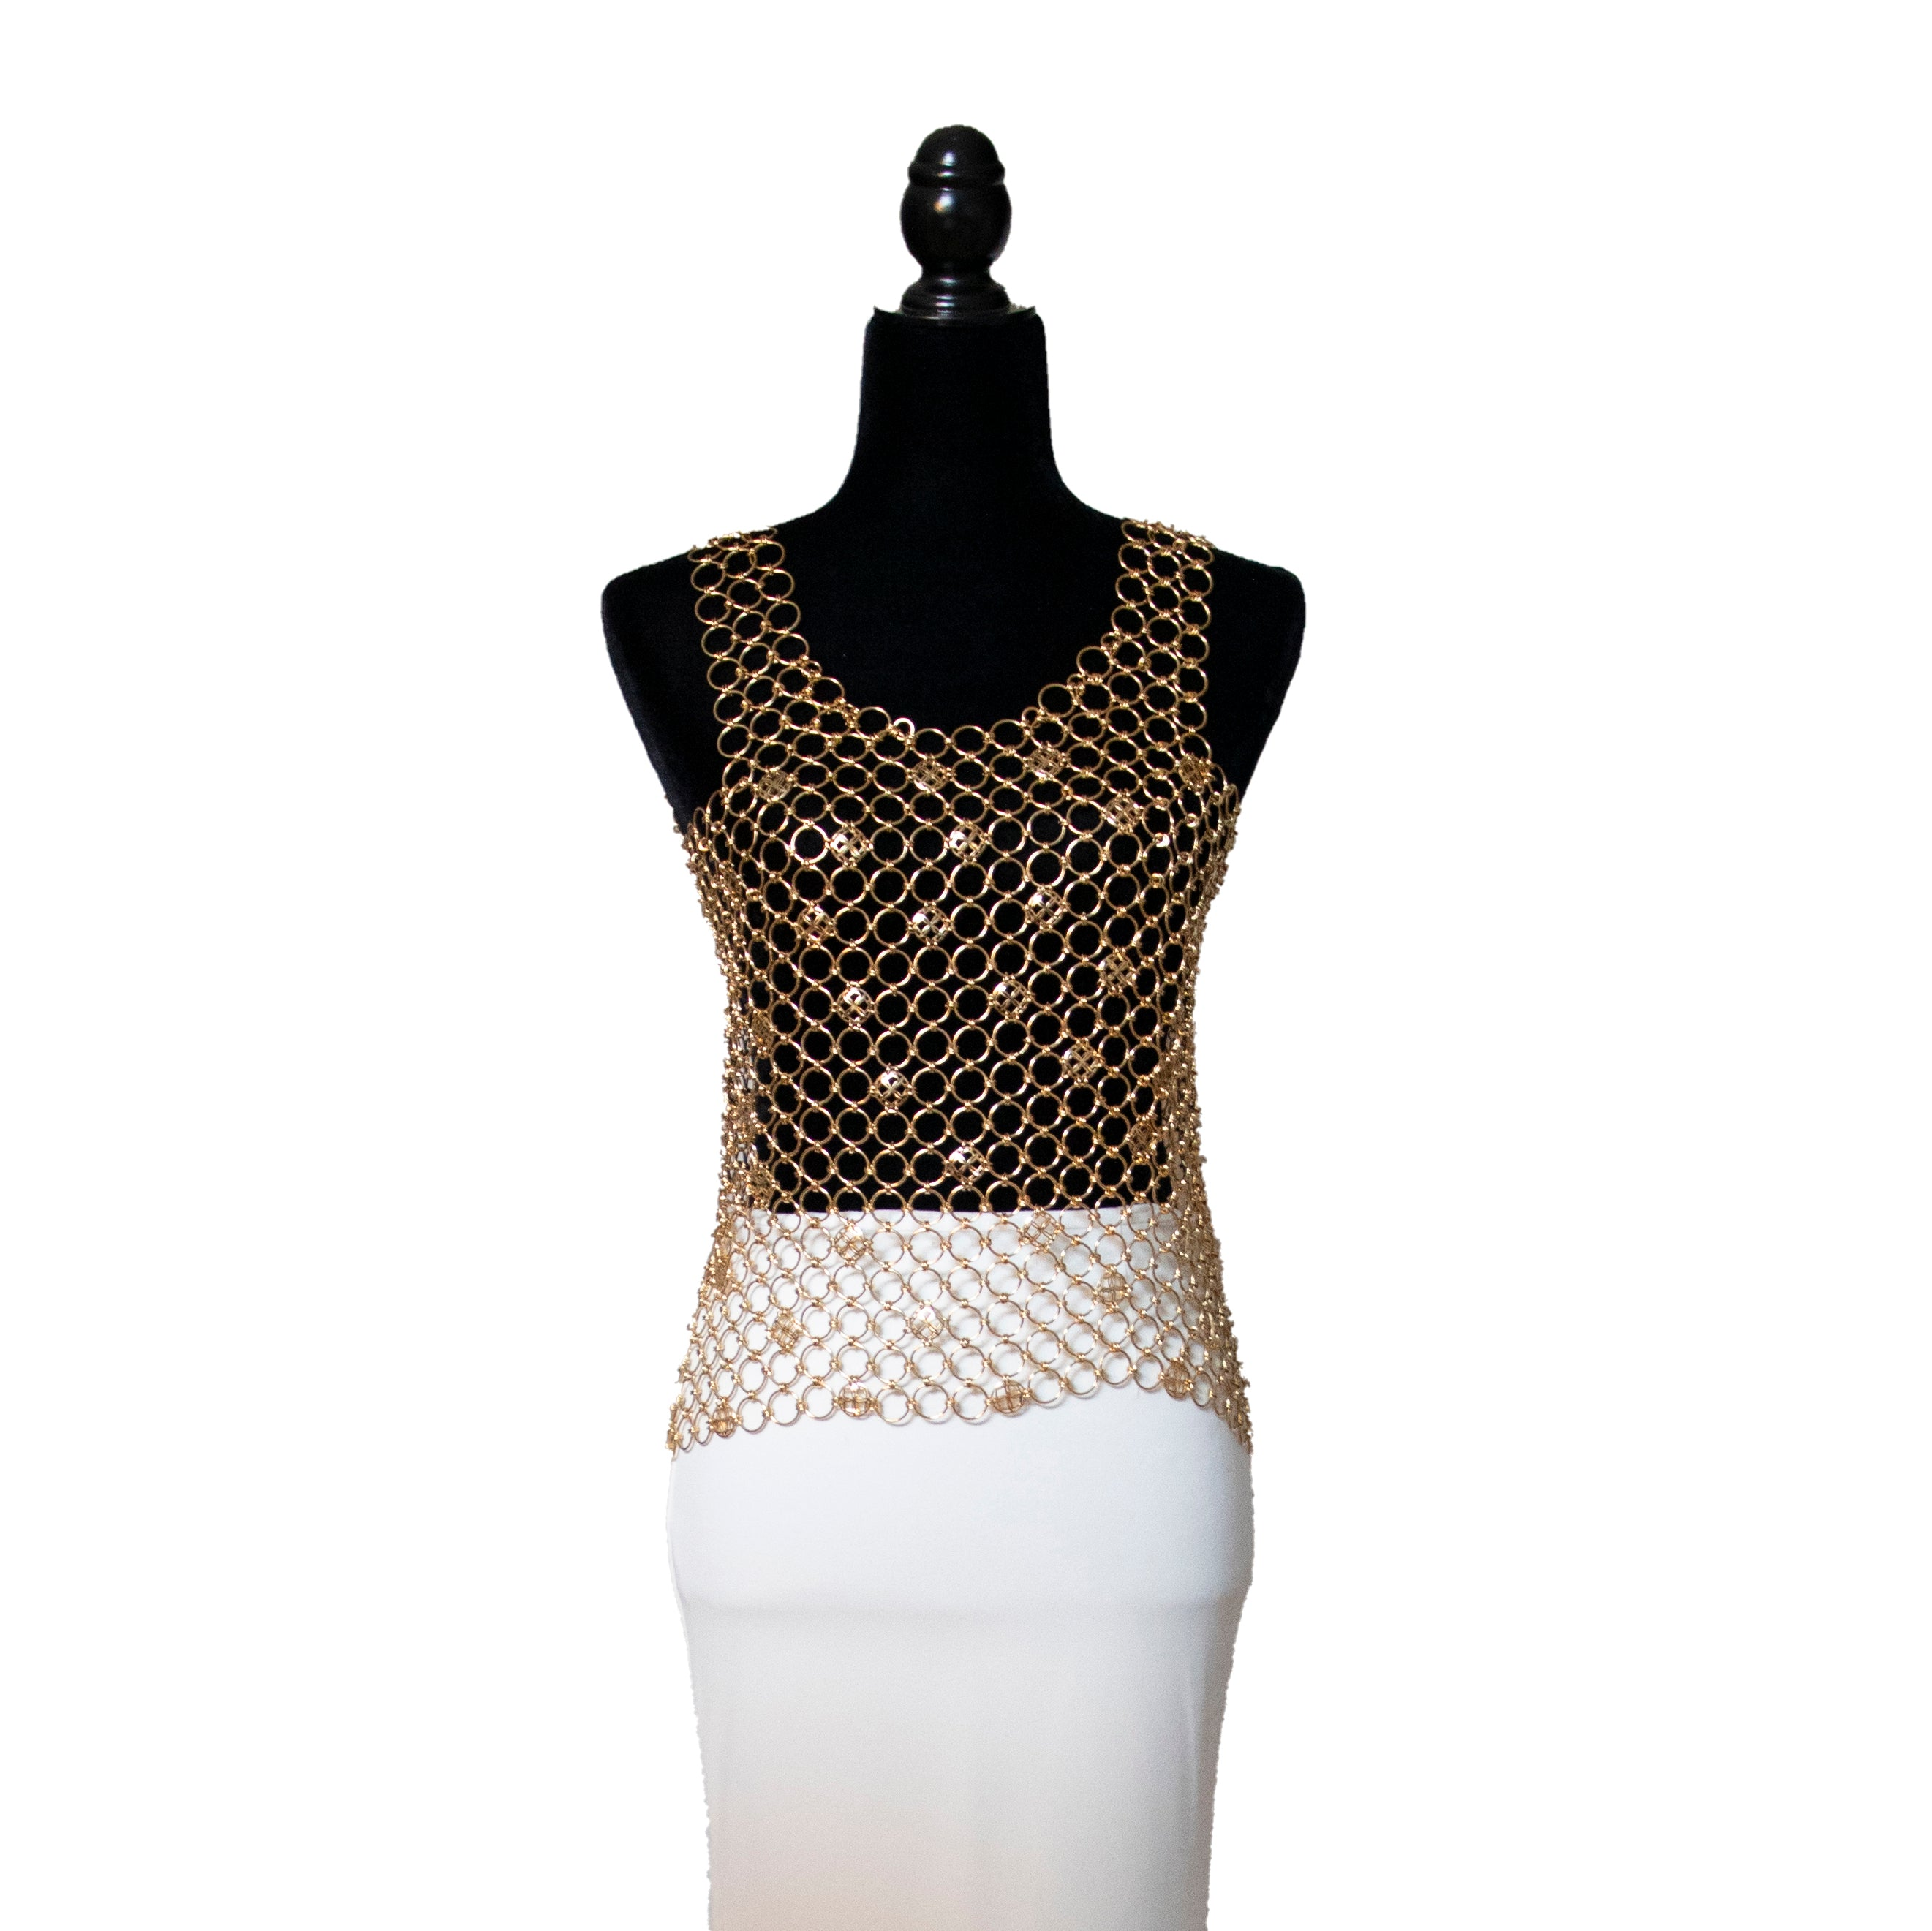 Gold Chain Signature Statement Top